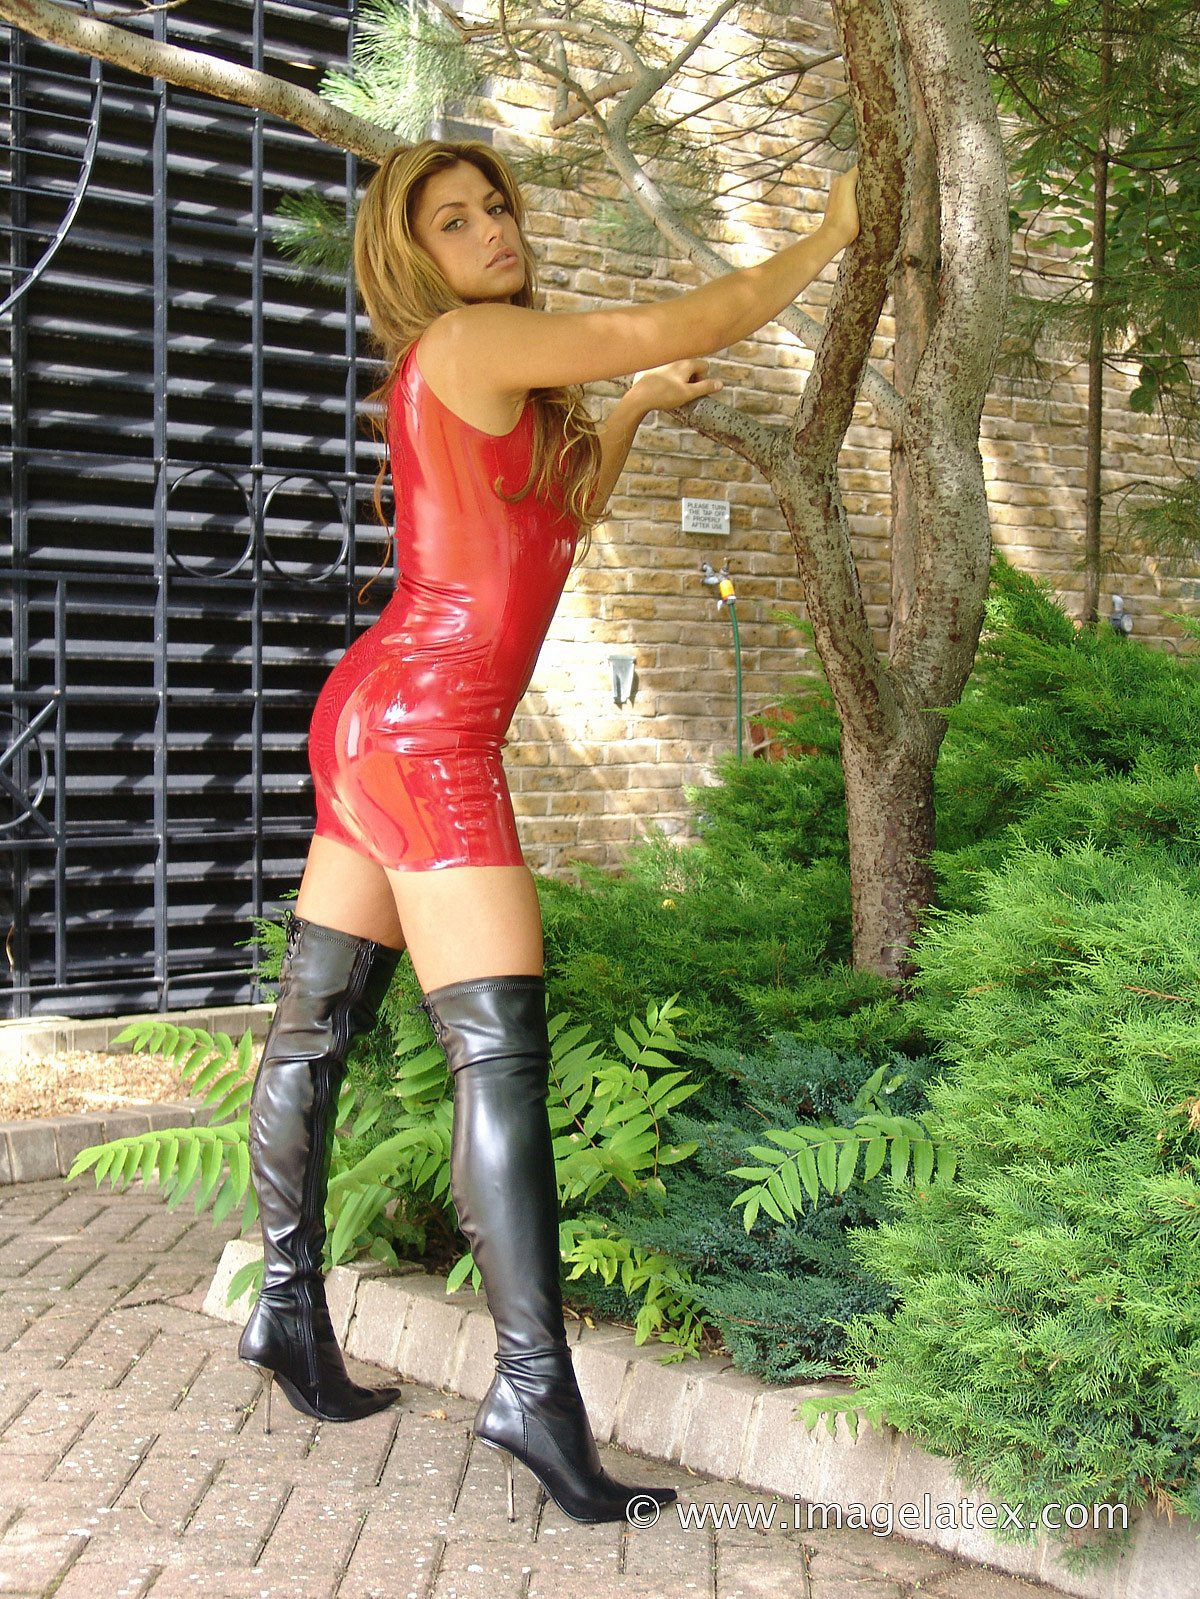 Dirty Milf Louise in Shiny Latex - picture 13